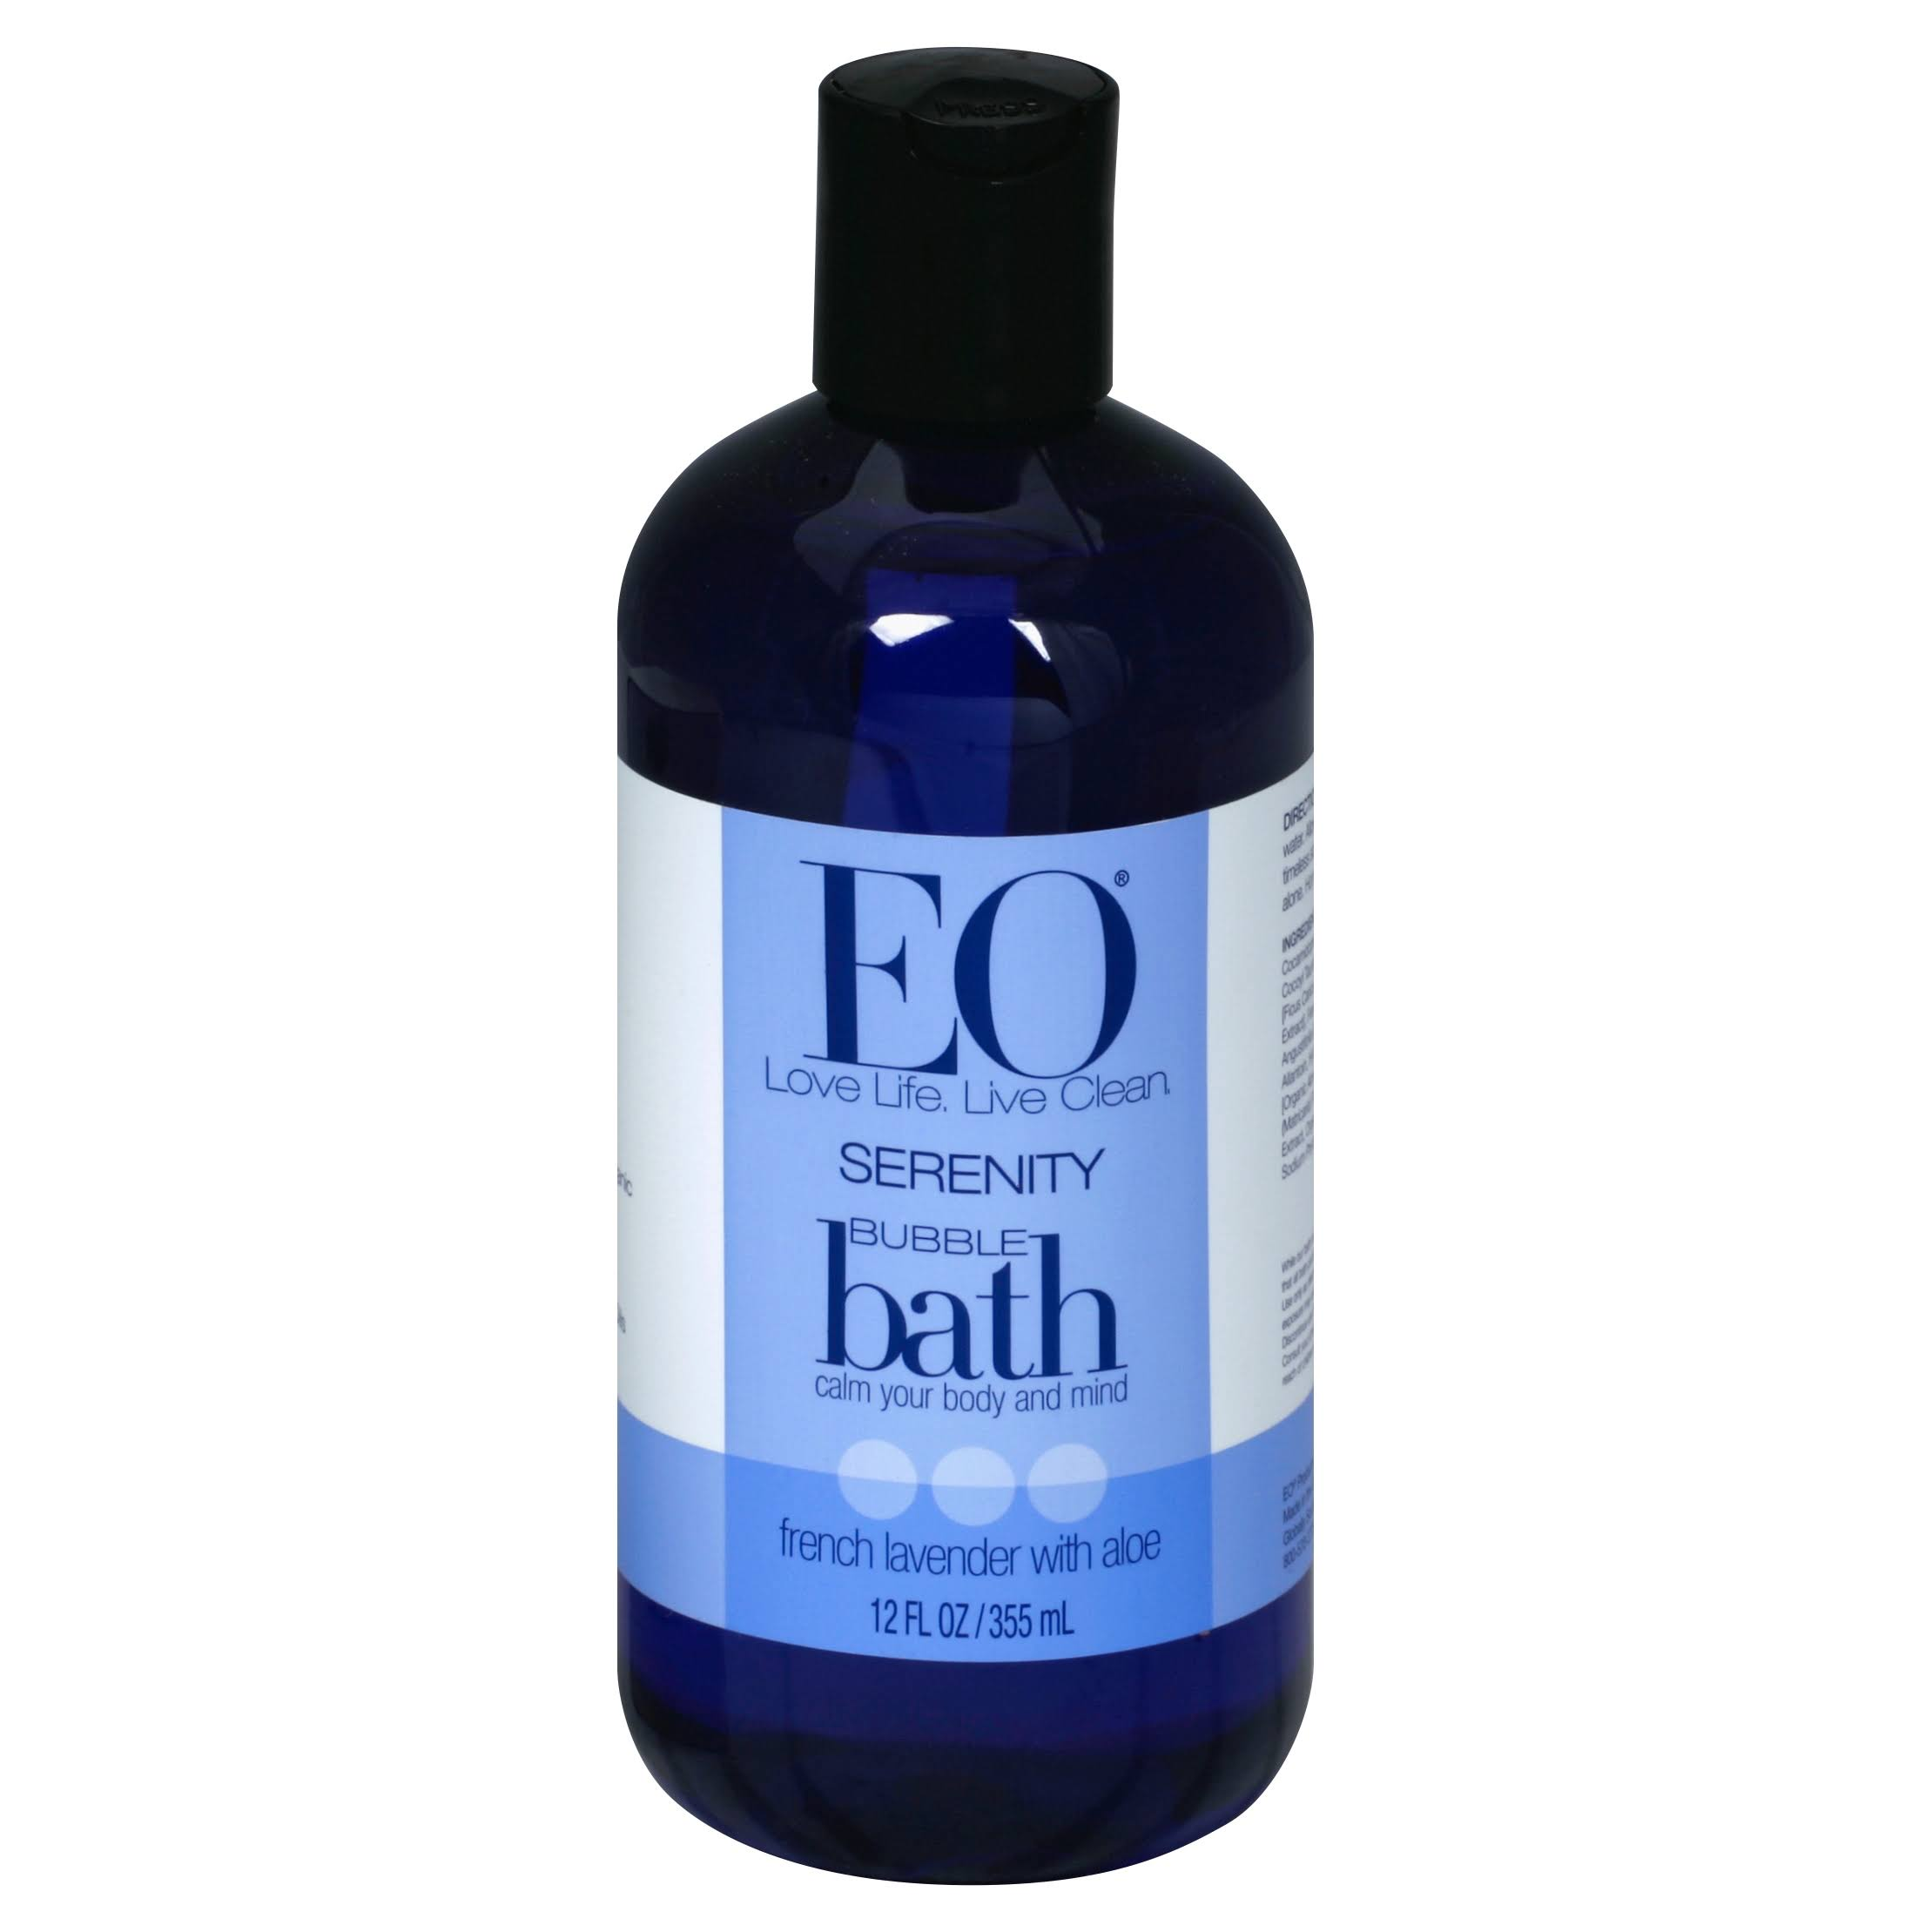 EO Products Serenity Bubble Bath - French Lavender with Aloe, 12oz